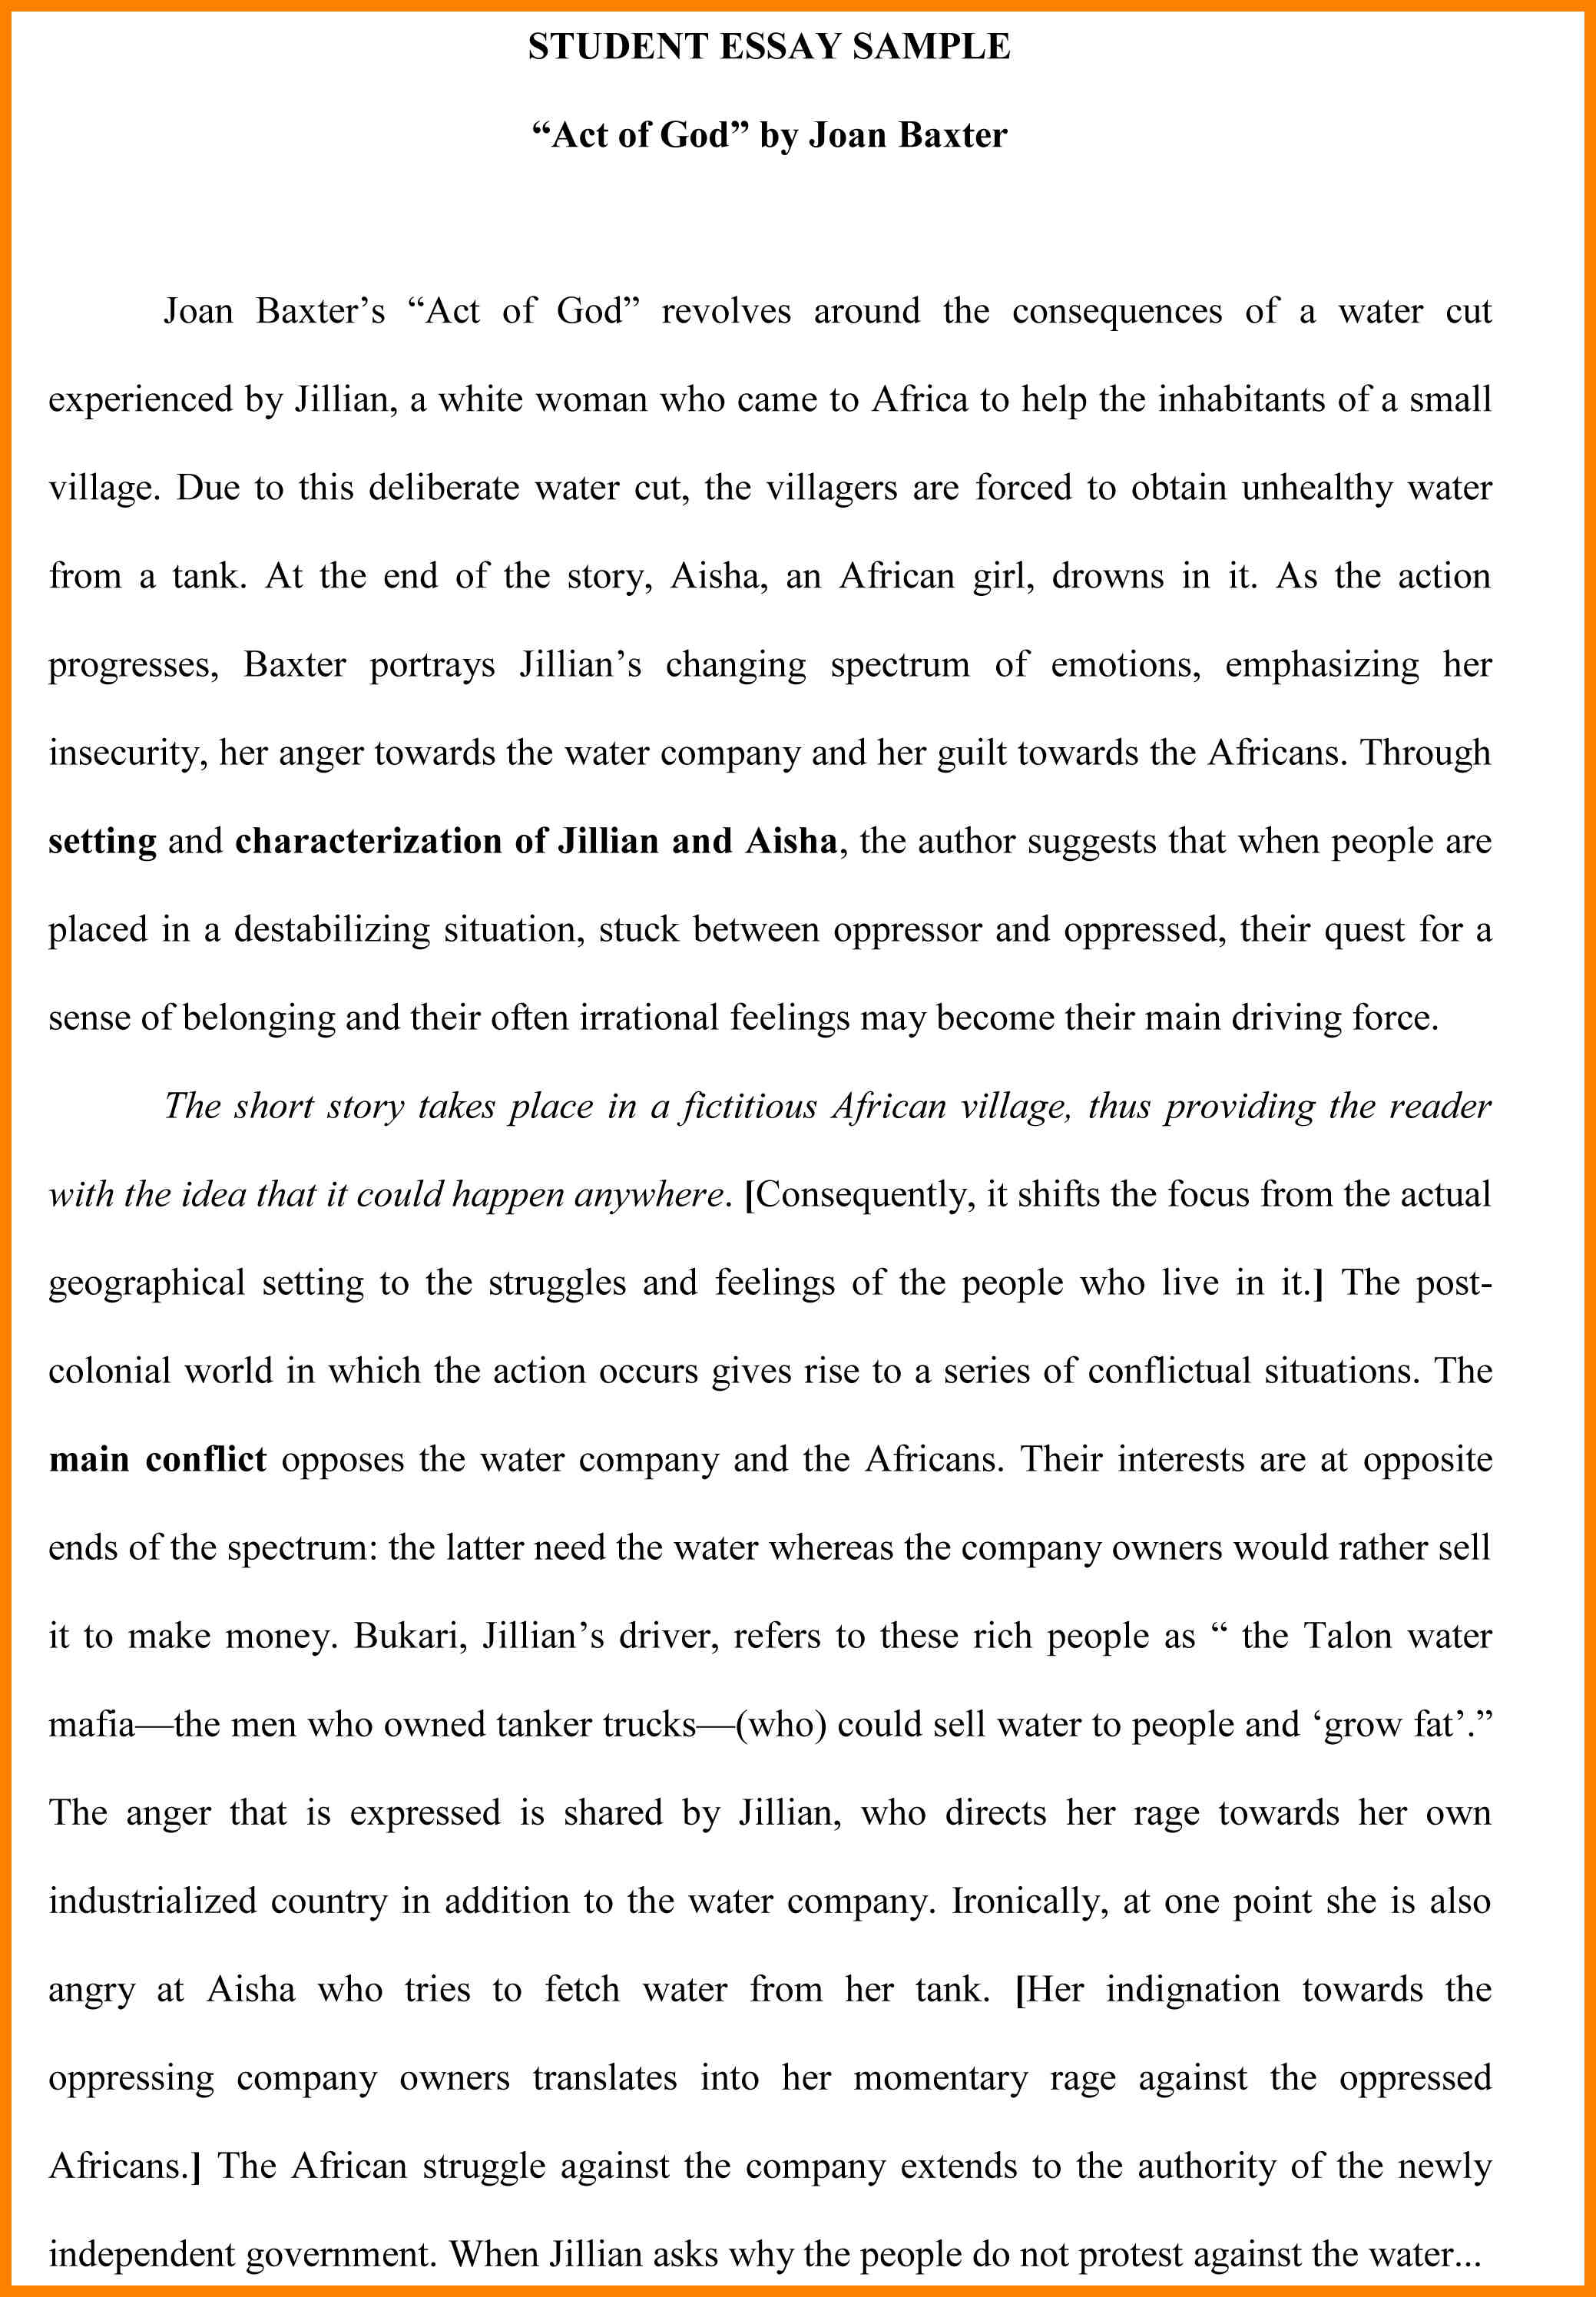 004 Essay Example Argumentative Pdf Examples Of Process Essays St Exemplification Opinion Classification Narrative Writing Sat Unique Outline Sample Download High School Full